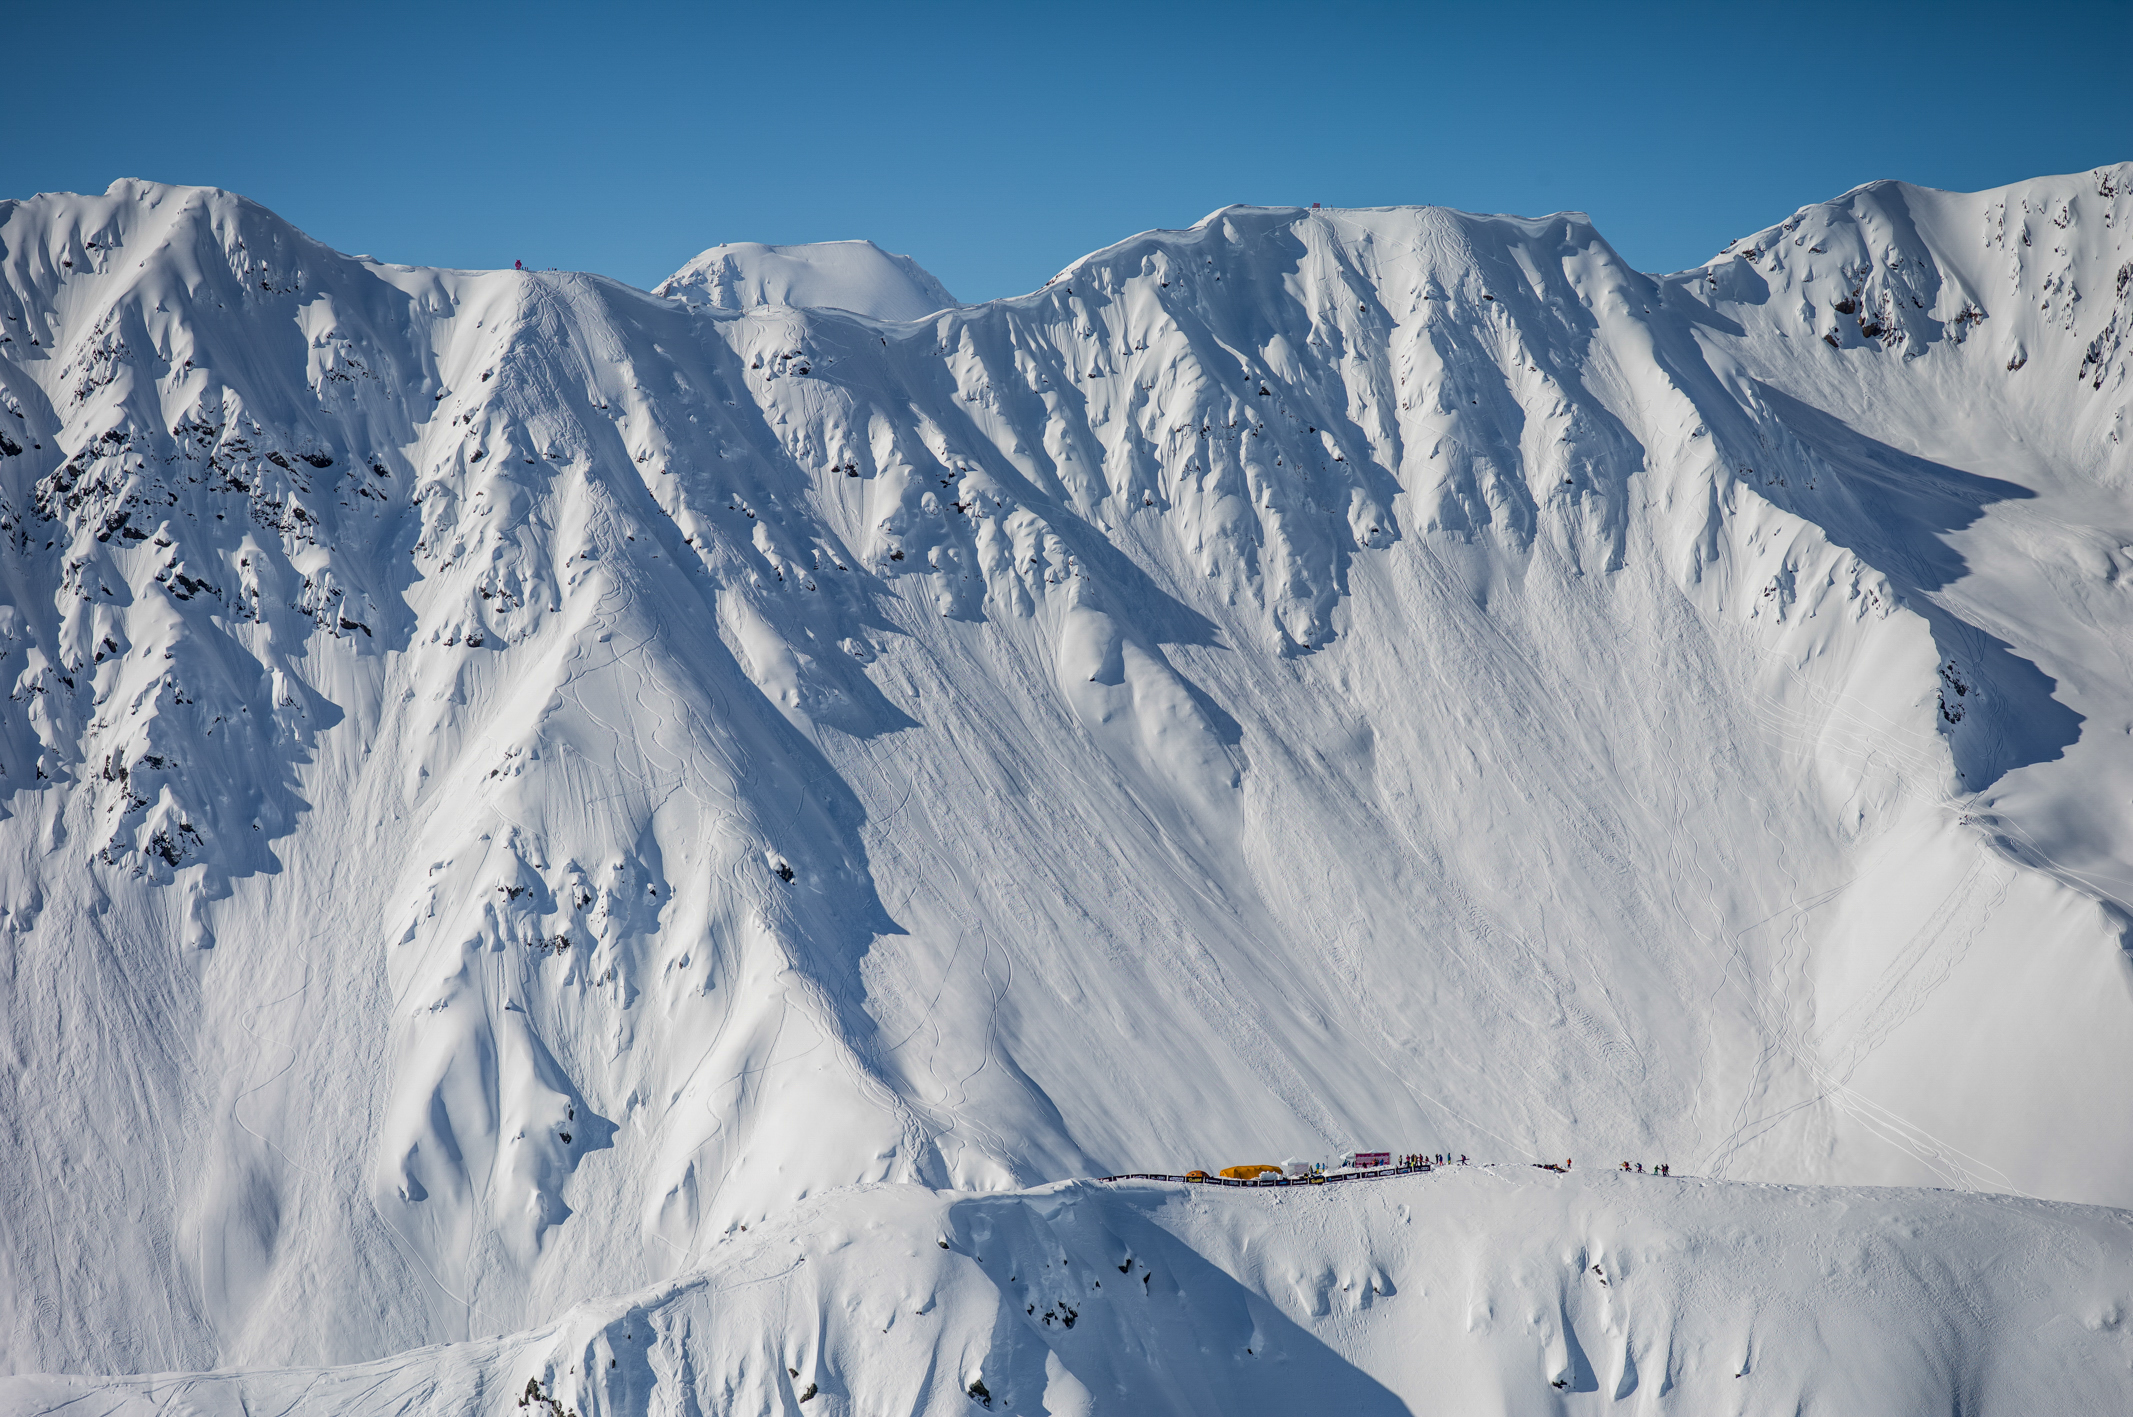 Swatch Freeride World Tour returns to Haines, Alaska